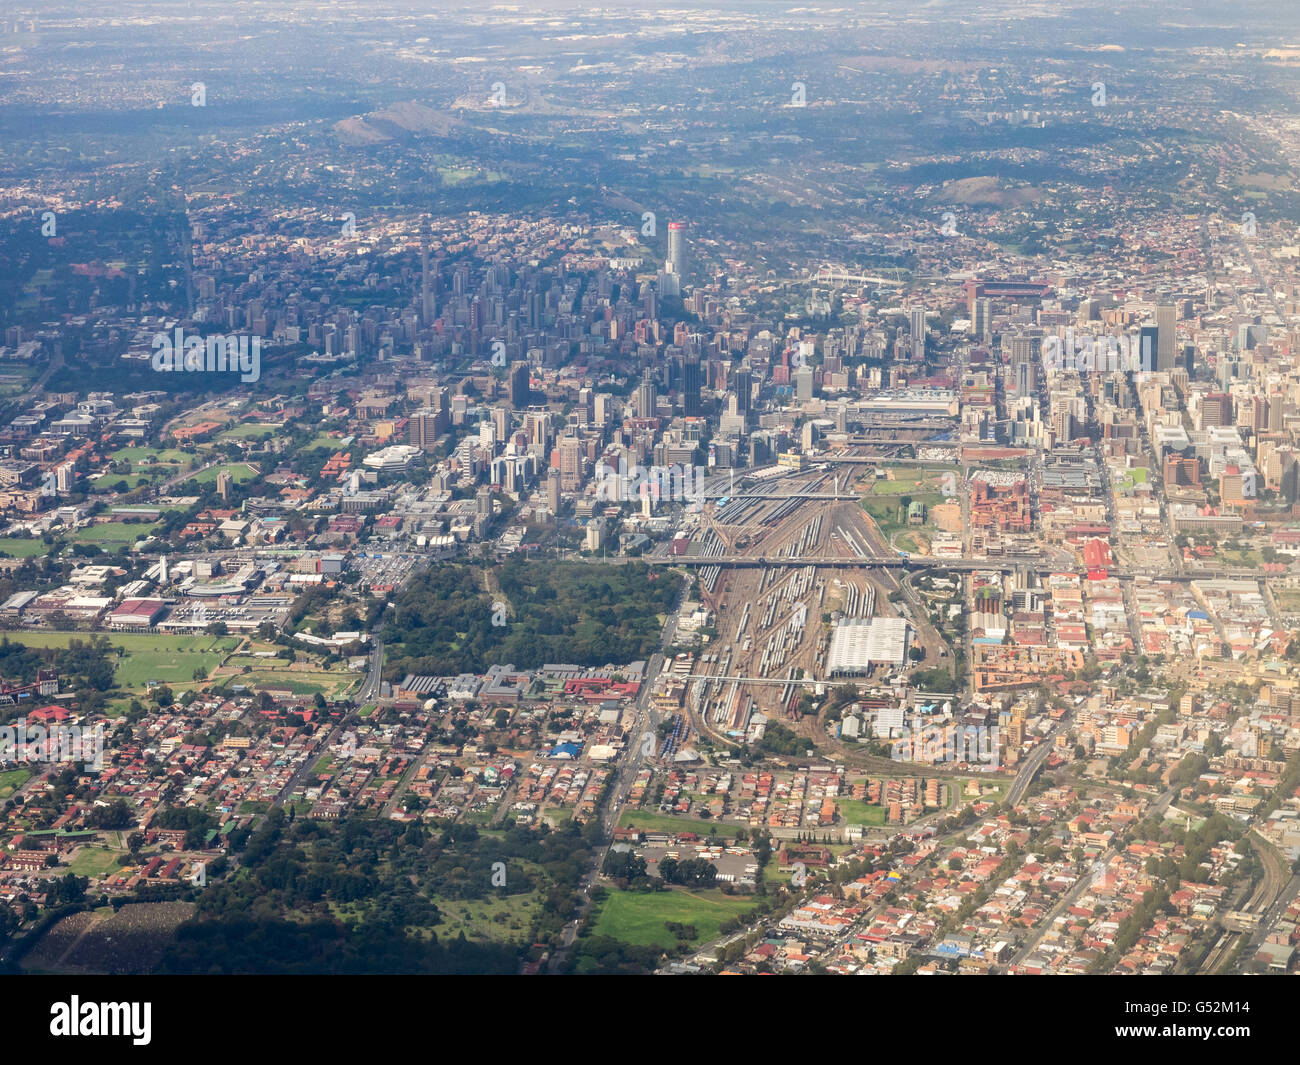 South Africa, Gauteng, Johannesburg, aerial view of Johannesburg with a view of the Nelson Mandela Bücke and - Stock Image